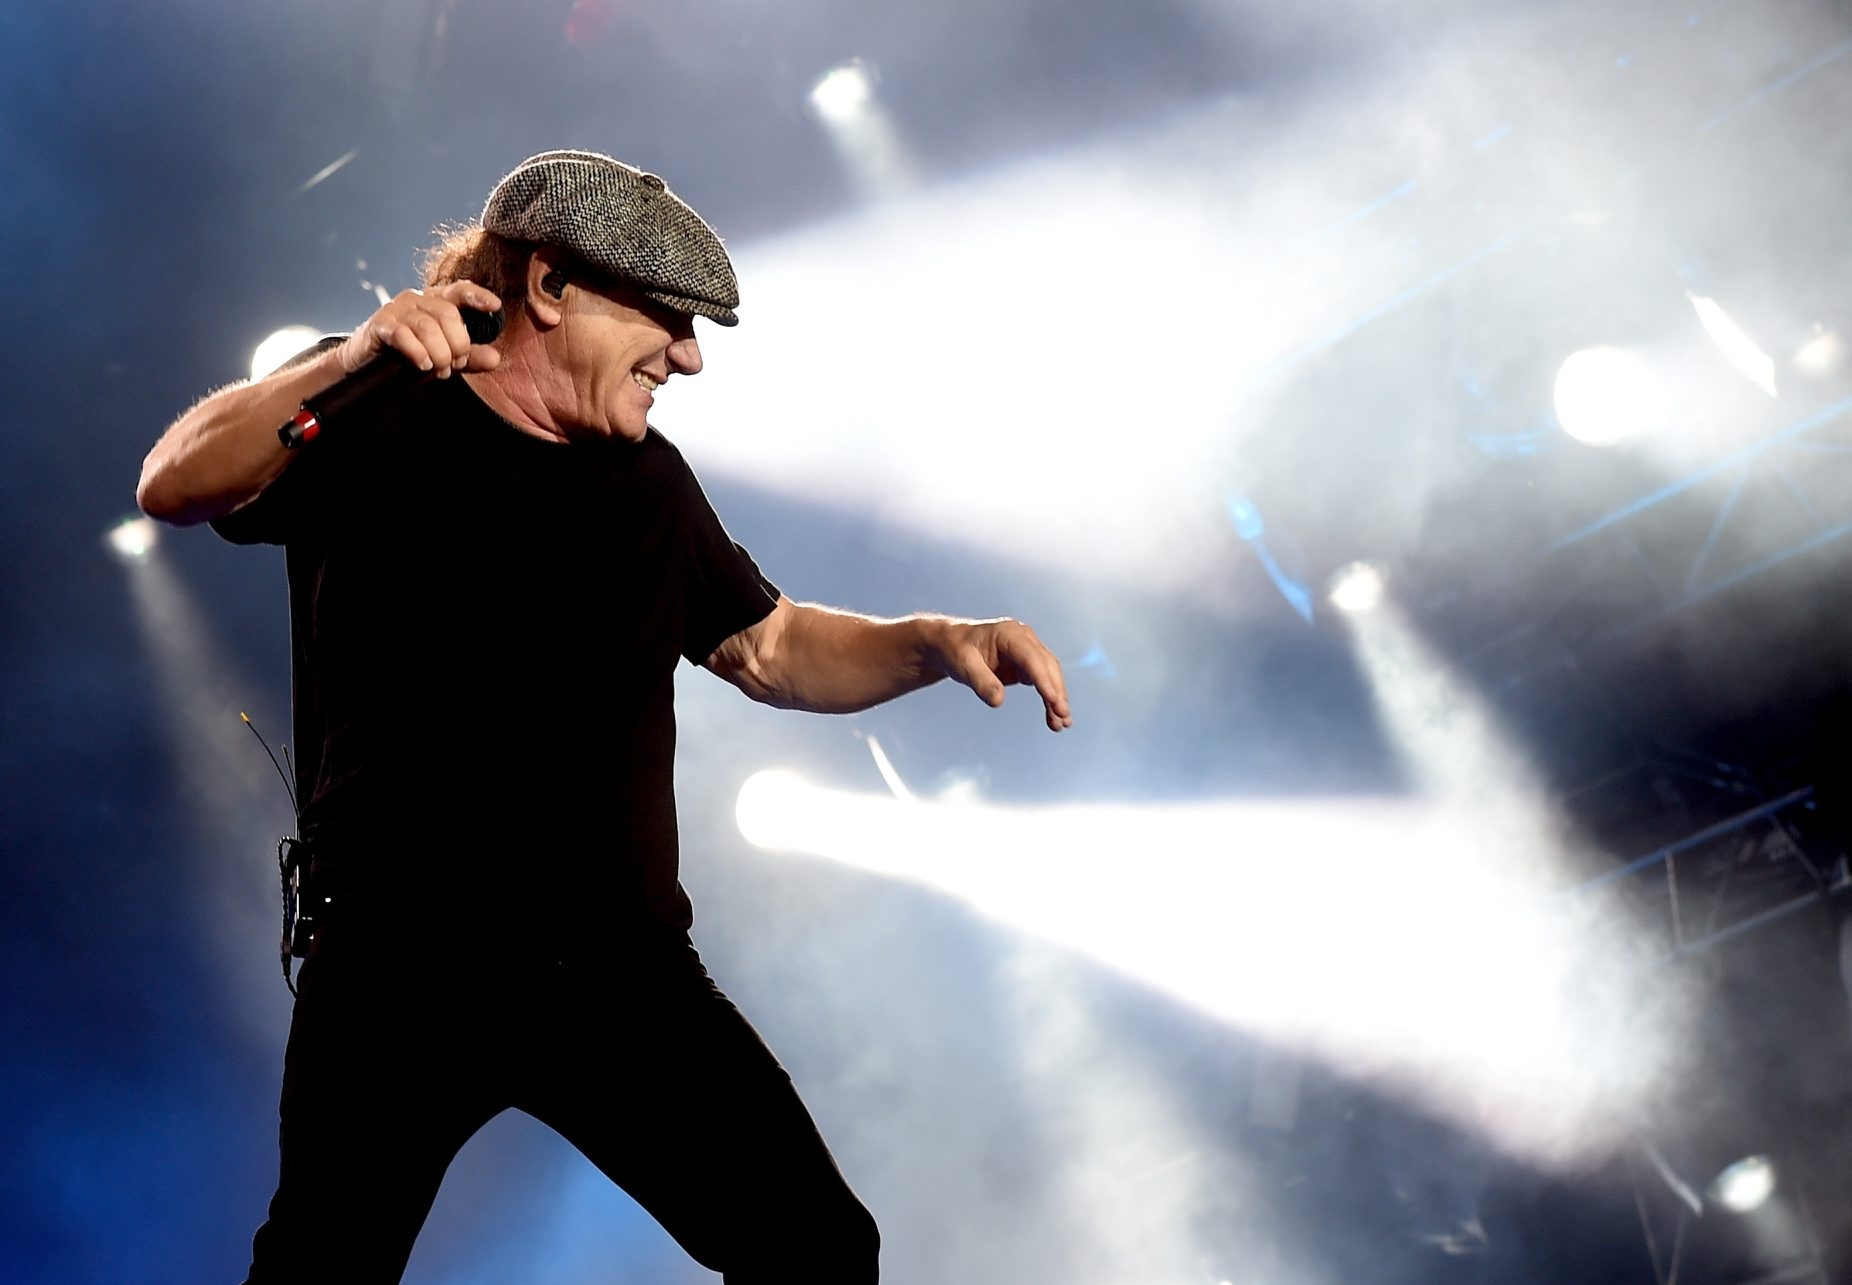 """Singer Brian Johnson of AC/DC has been advised by doctors to """"stop touring immediately or risk total hearing loss."""" (Getty Images)."""